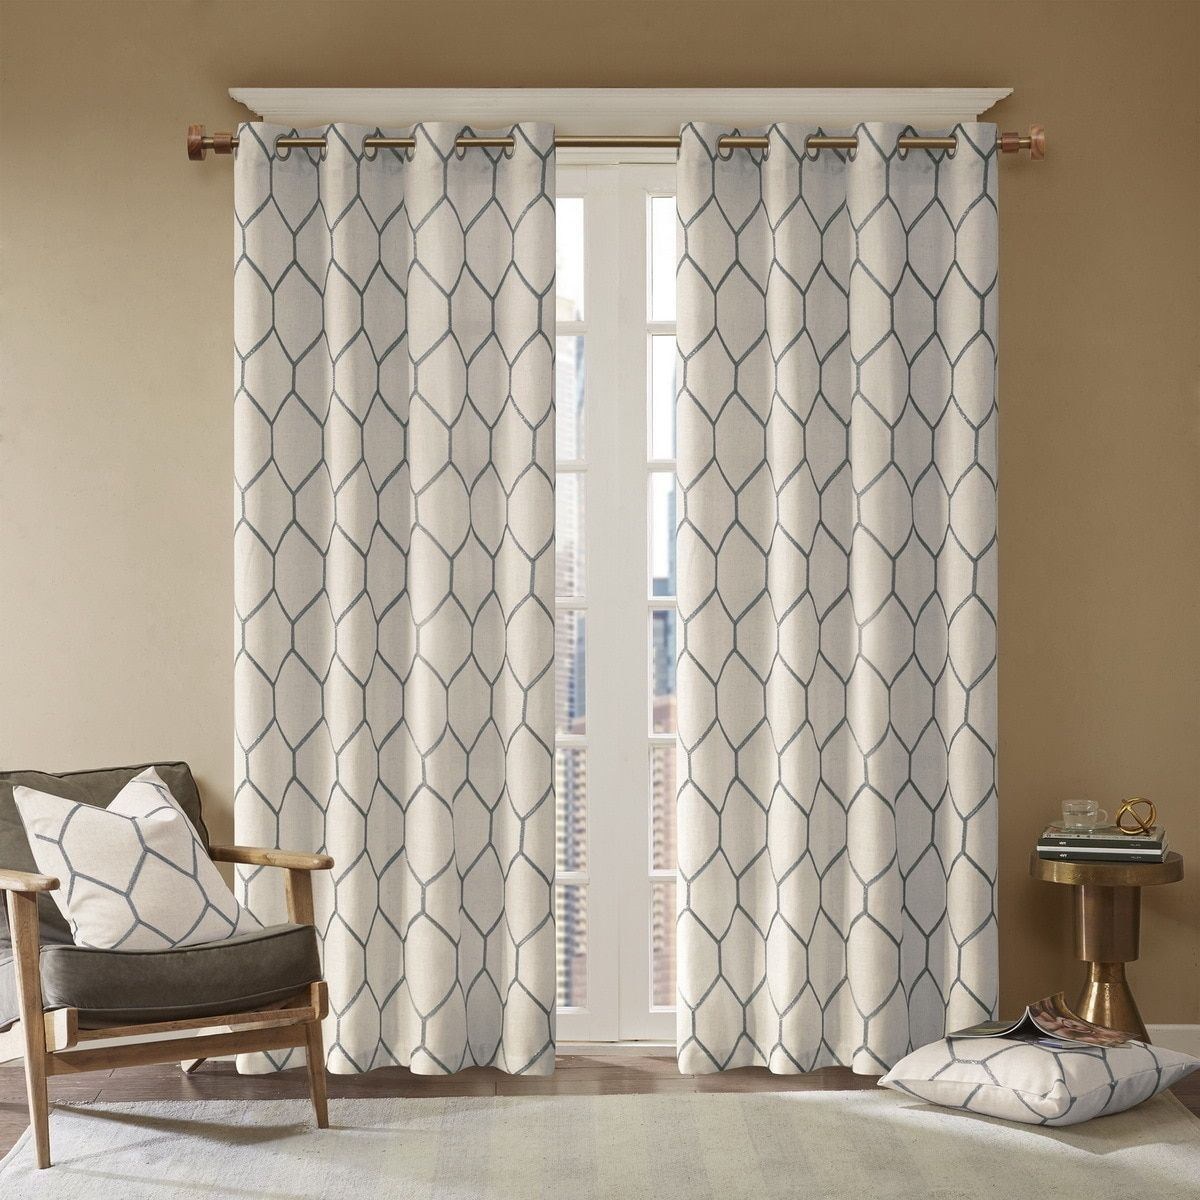 Madison Park Asher Metallic Geo Embroidered Window Curtain Panel 50W X 95L Spice Beige Size 95 Inches Linen Geometric